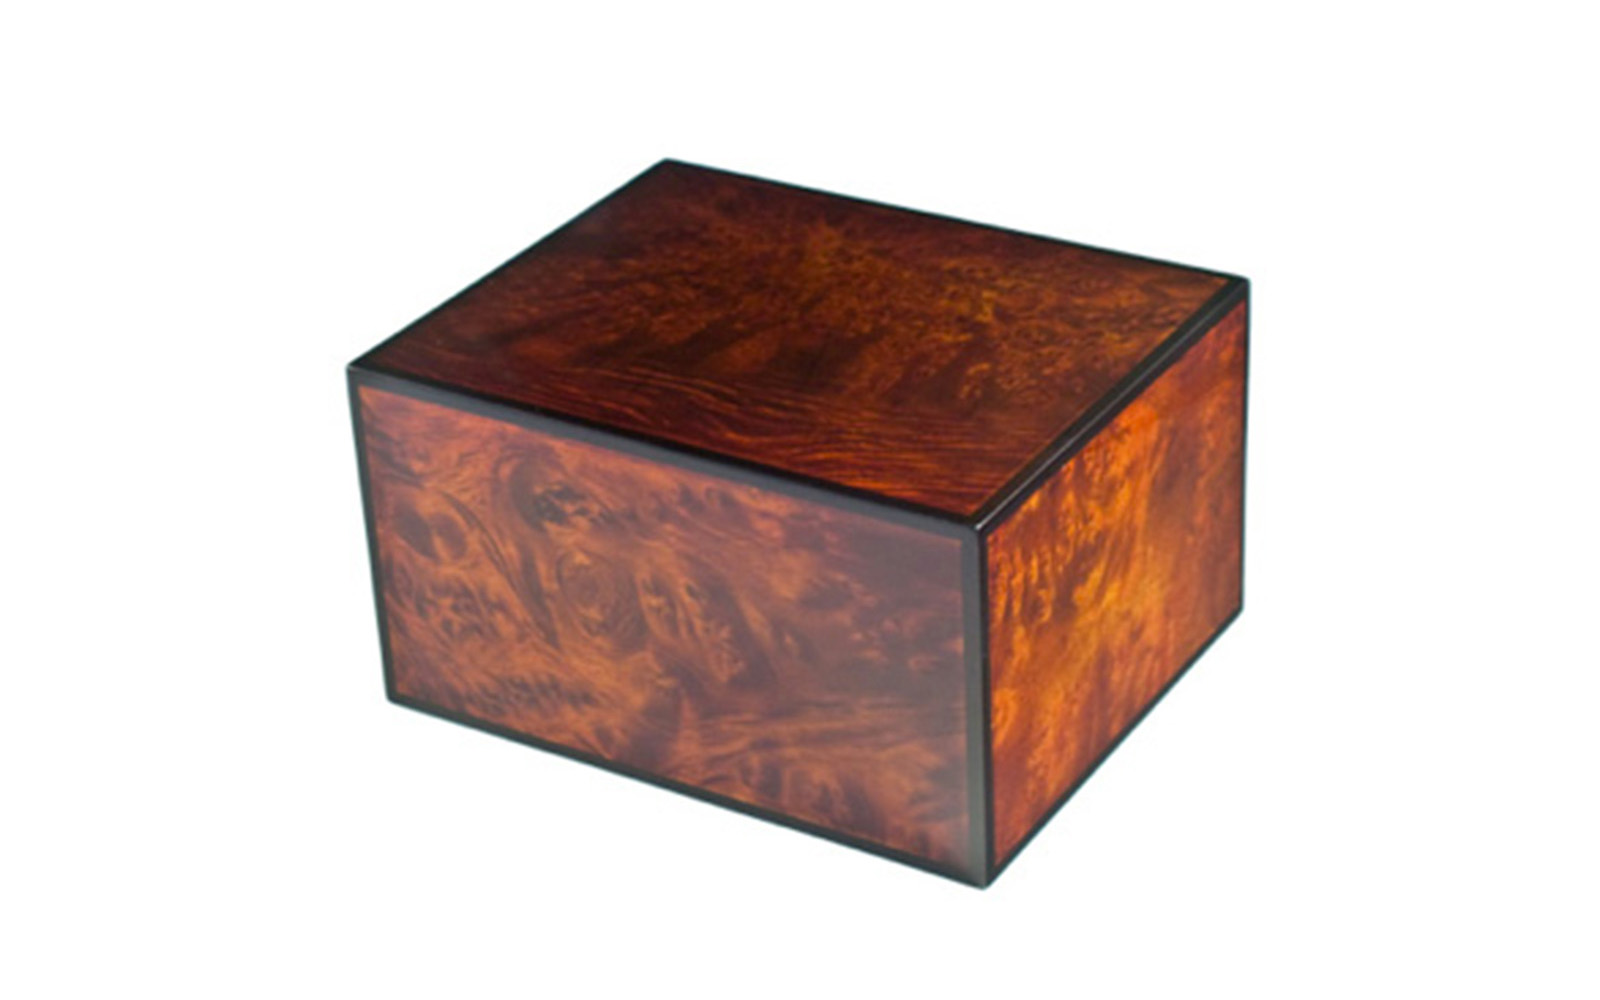 "Montreaux     Montreaux has charmed individuals with its spectacular views of the Alps and picturesque architecture. The lovely rustic burl in a natural finish with black edges captures this region's true beauty and Old World traditions. This urn is available in small and large sizes only.     Small:  29 Cu. inches / up to 24 lbs. / 3.7"" x 3.7"" x 4.5""  $115    Large:  235 Cu. inches / up to 230 lbs. / 9.1"" x 7.4"" x 5.2""  $225"